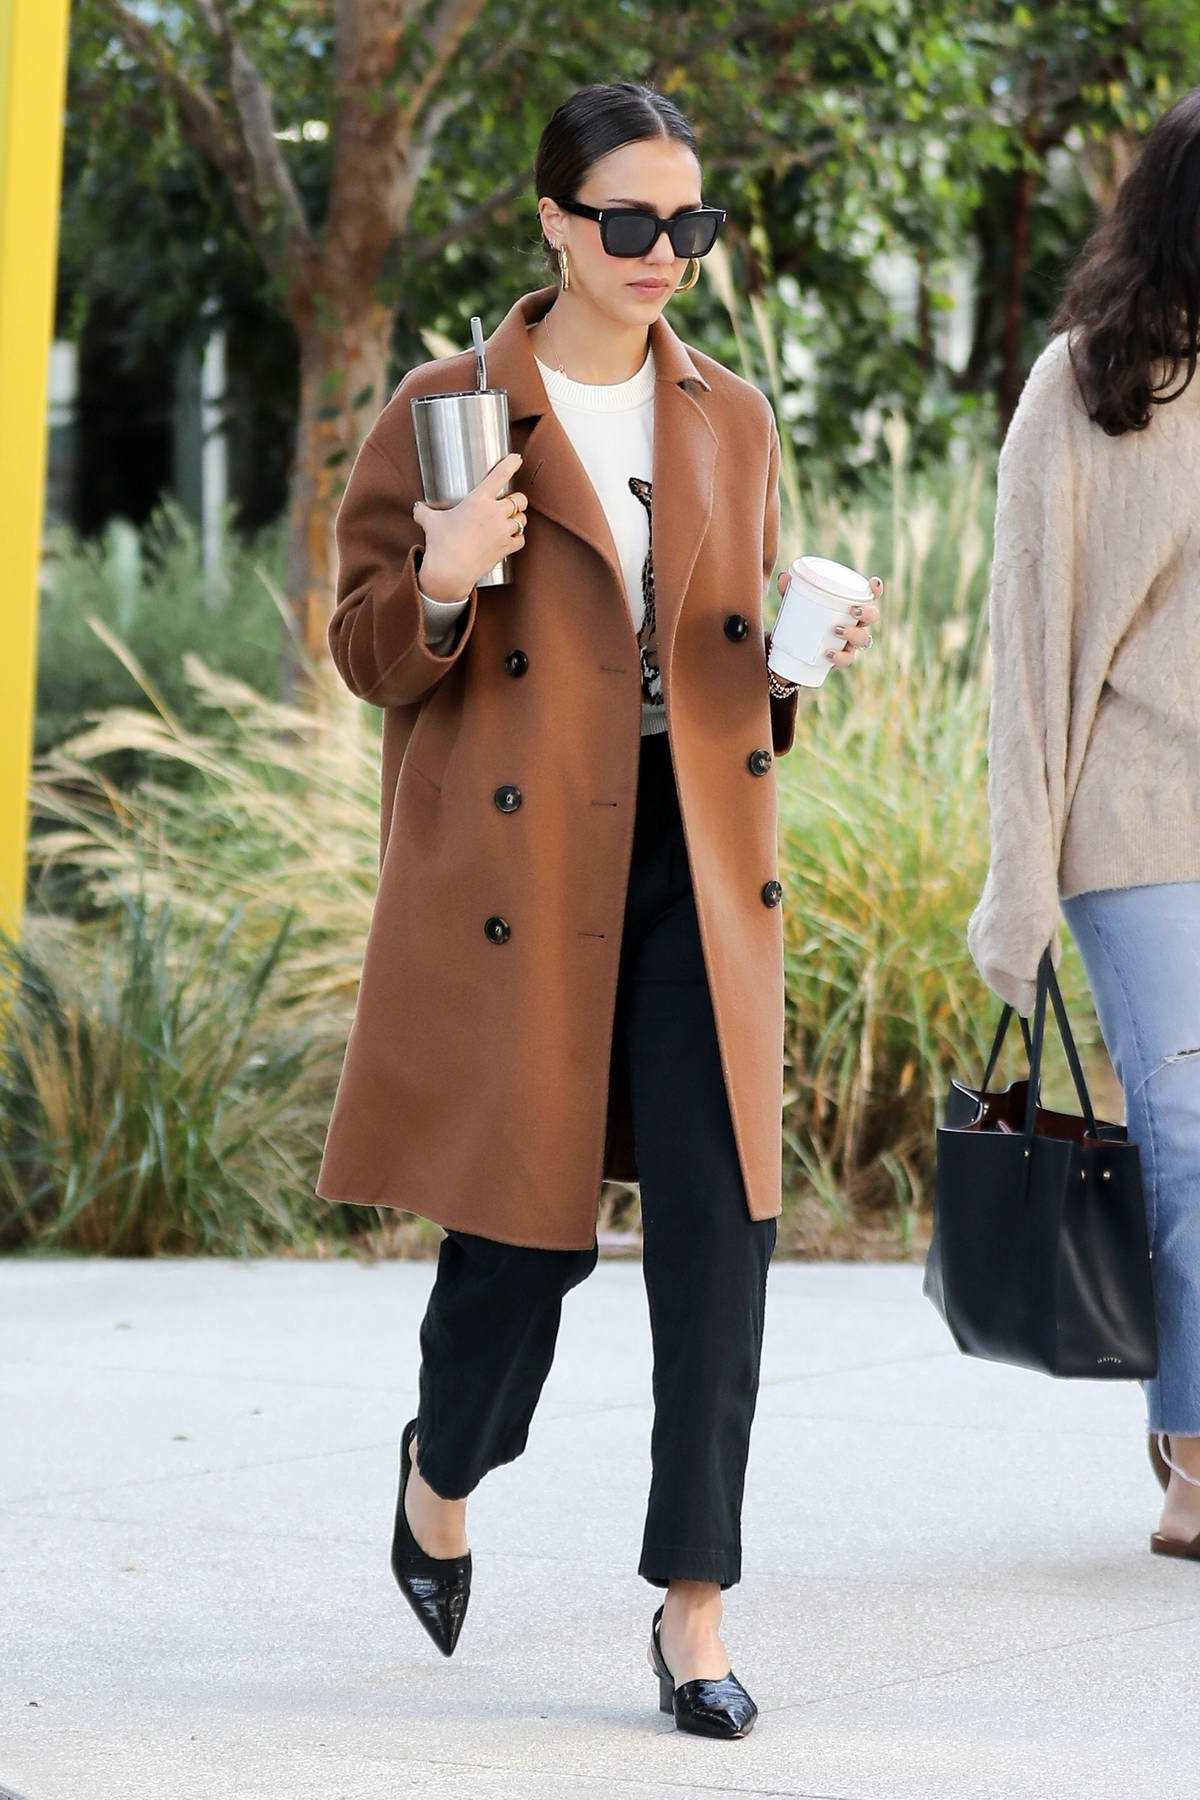 Jessica Alba looks chic as she arrives at the Honest Company headquarters in Santa Monica, California